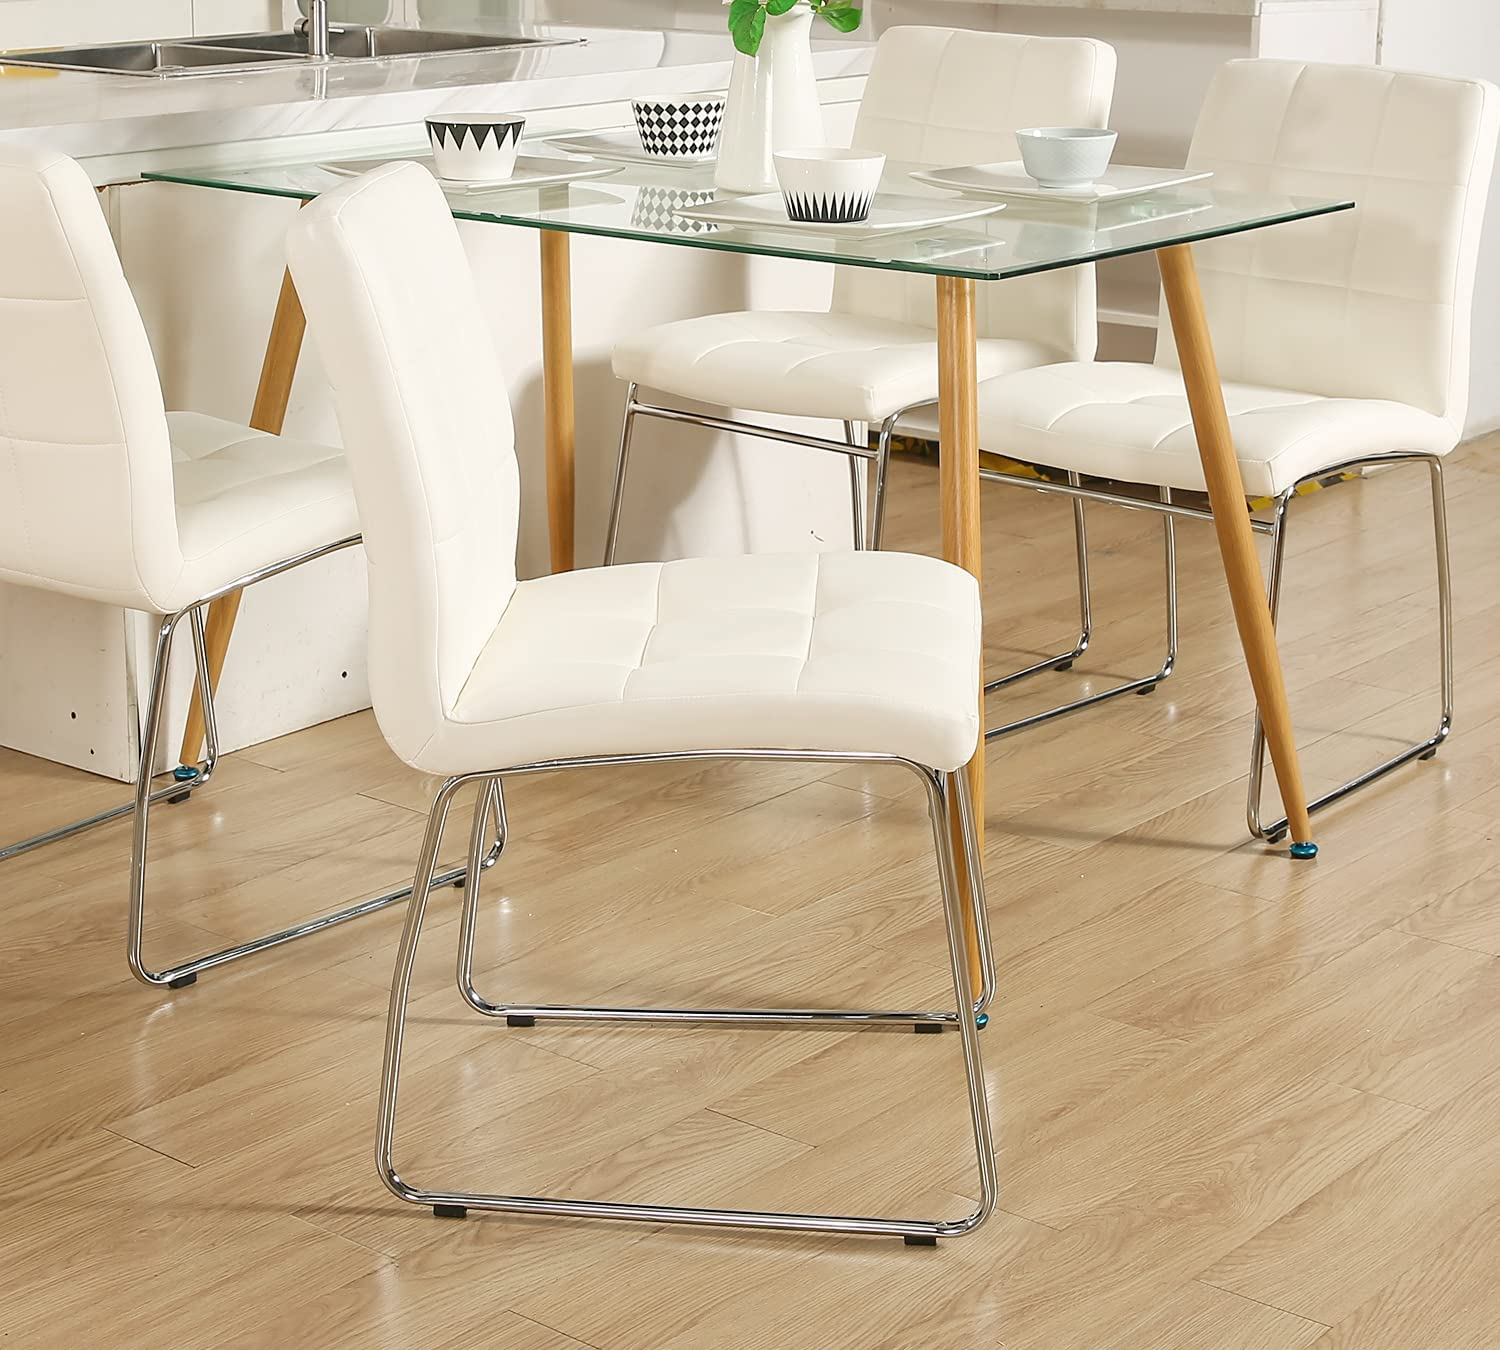 Glass Dining Table Set for 9,WISOICE Modern Rectangle Glass Table with 9 PU  Leather Side Chairs for Dining Room Living Room and Kitchen Table + 9 ...